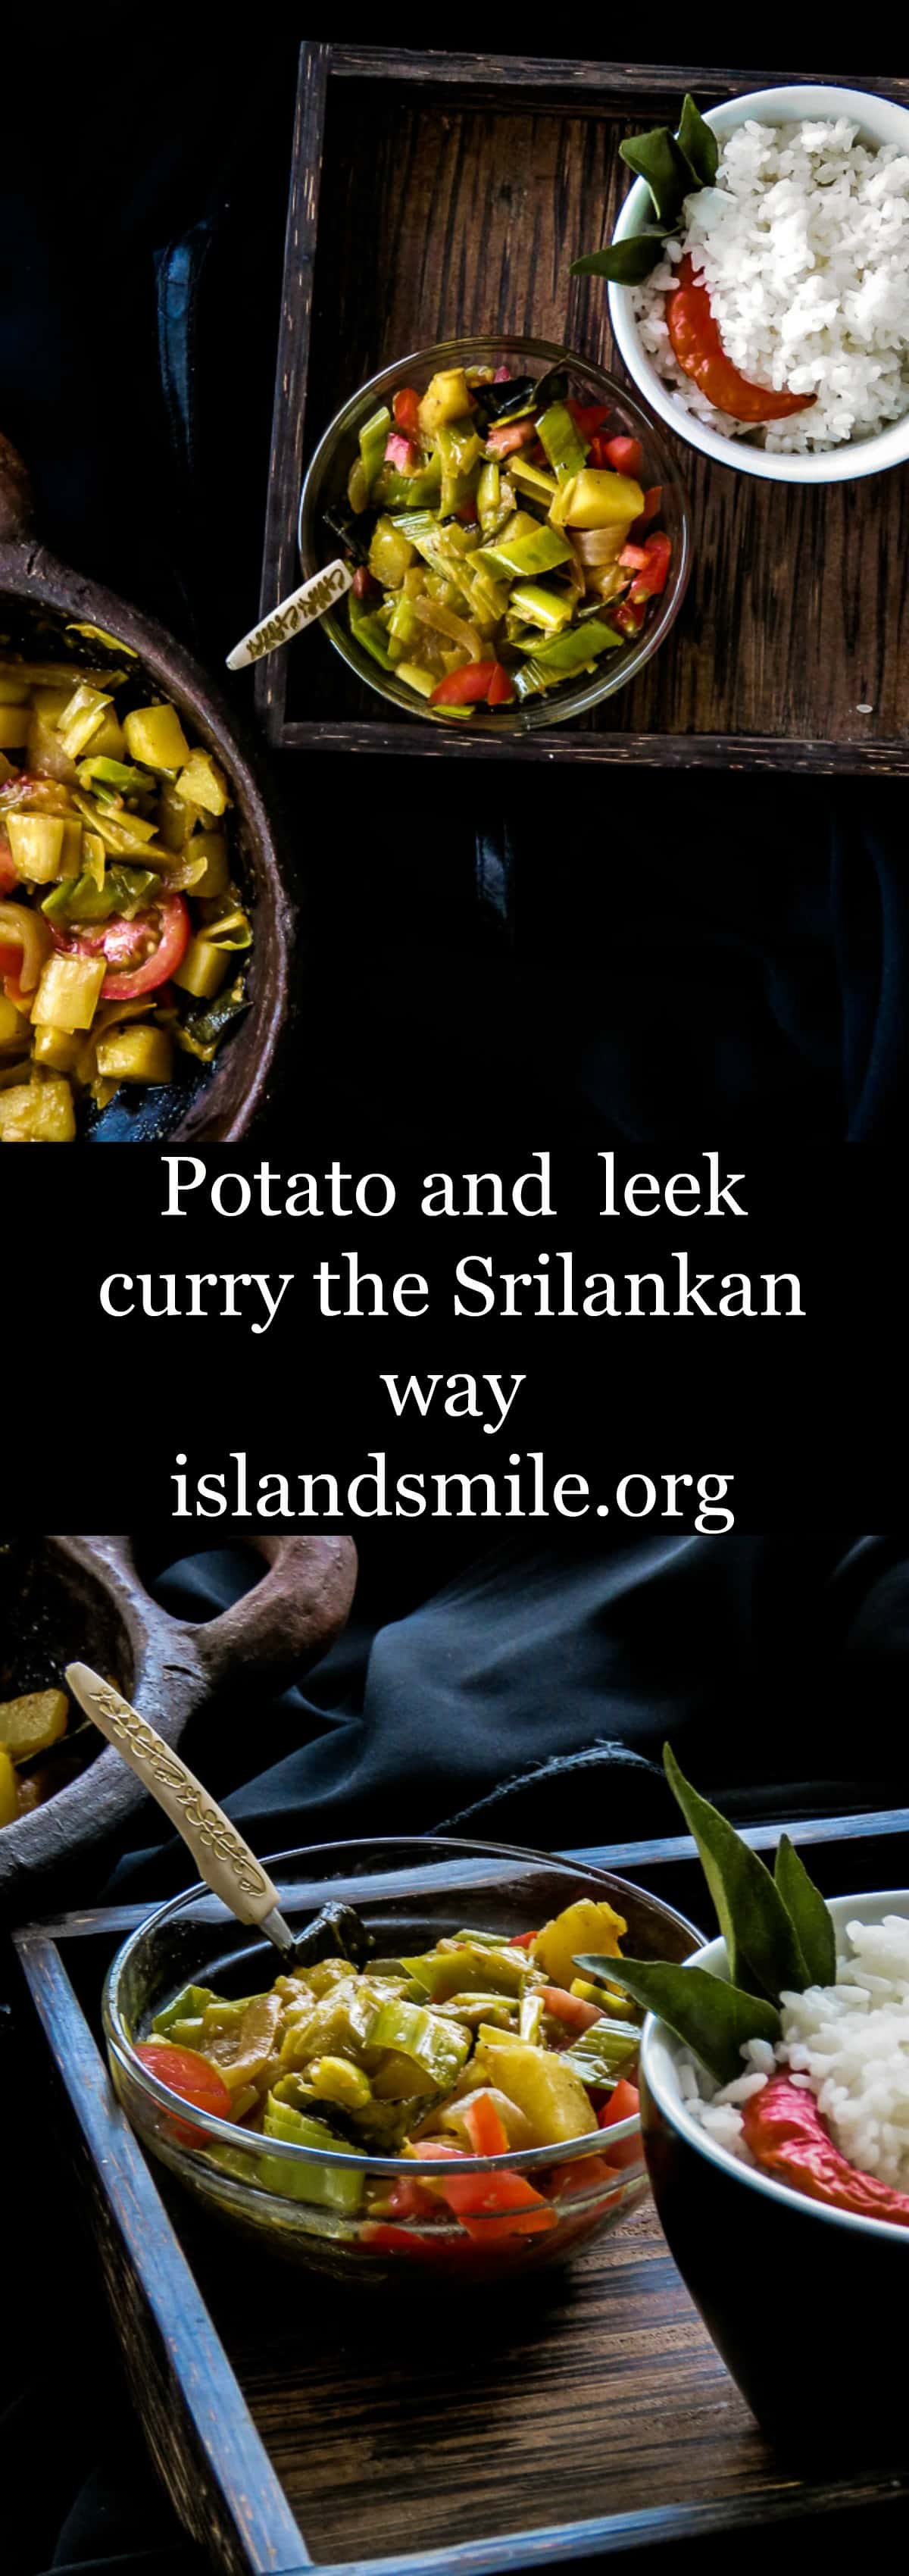 Potato and leeks currysrilankan and recipes for the family potato and leeks currya vegetarian and vegan dish which is also srilankan 4888 forumfinder Choice Image